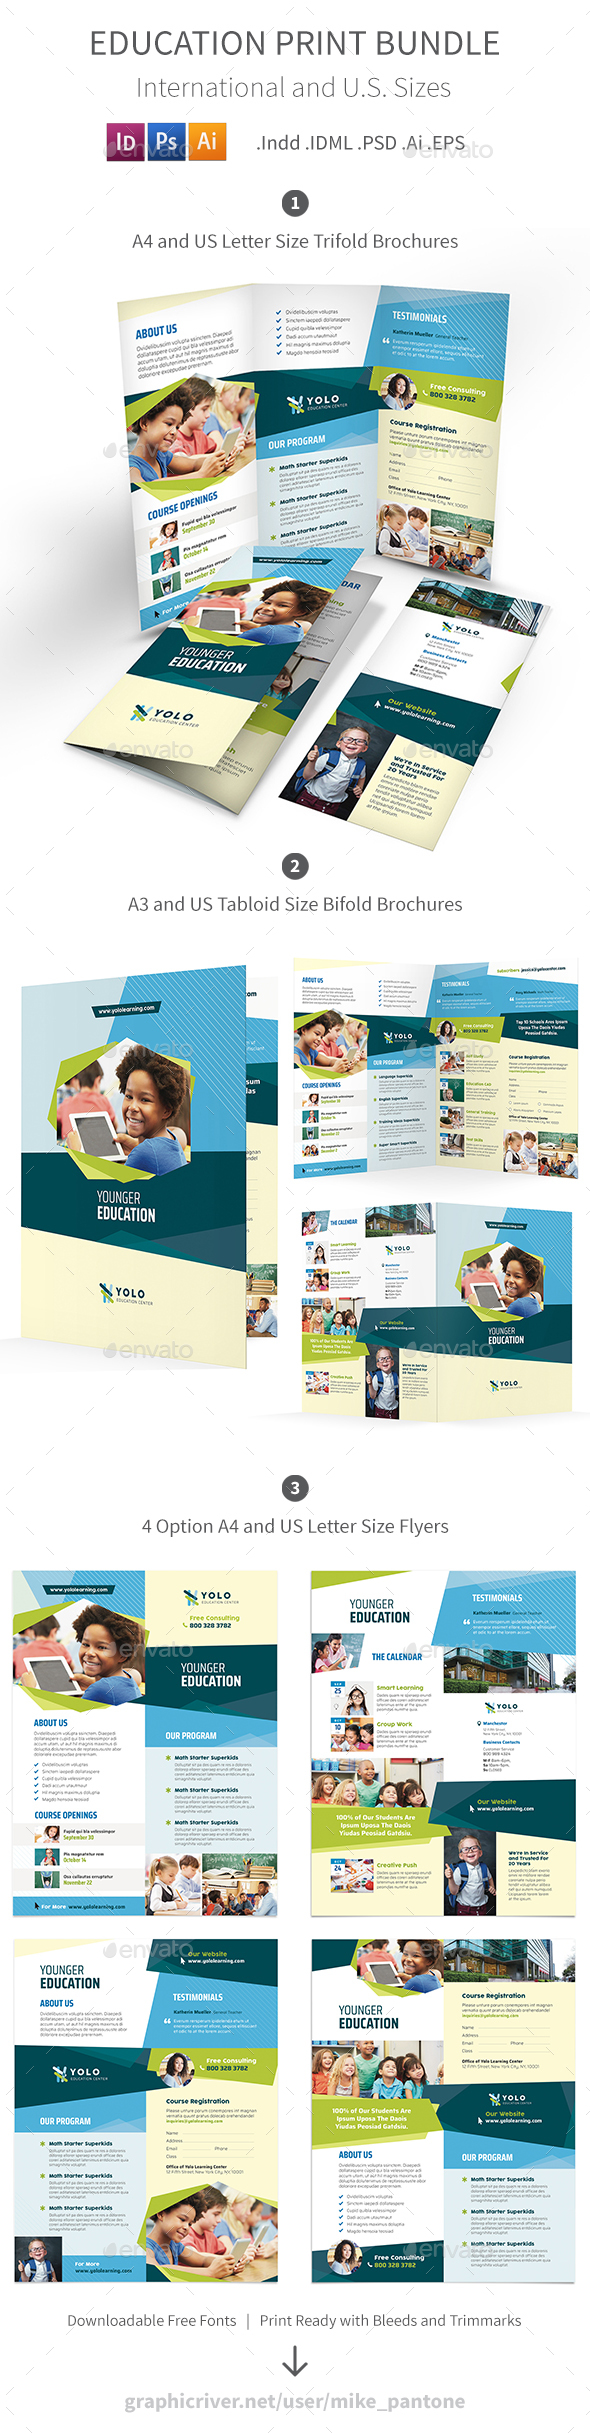 GraphicRiver Education Print Bundle 10 20759800